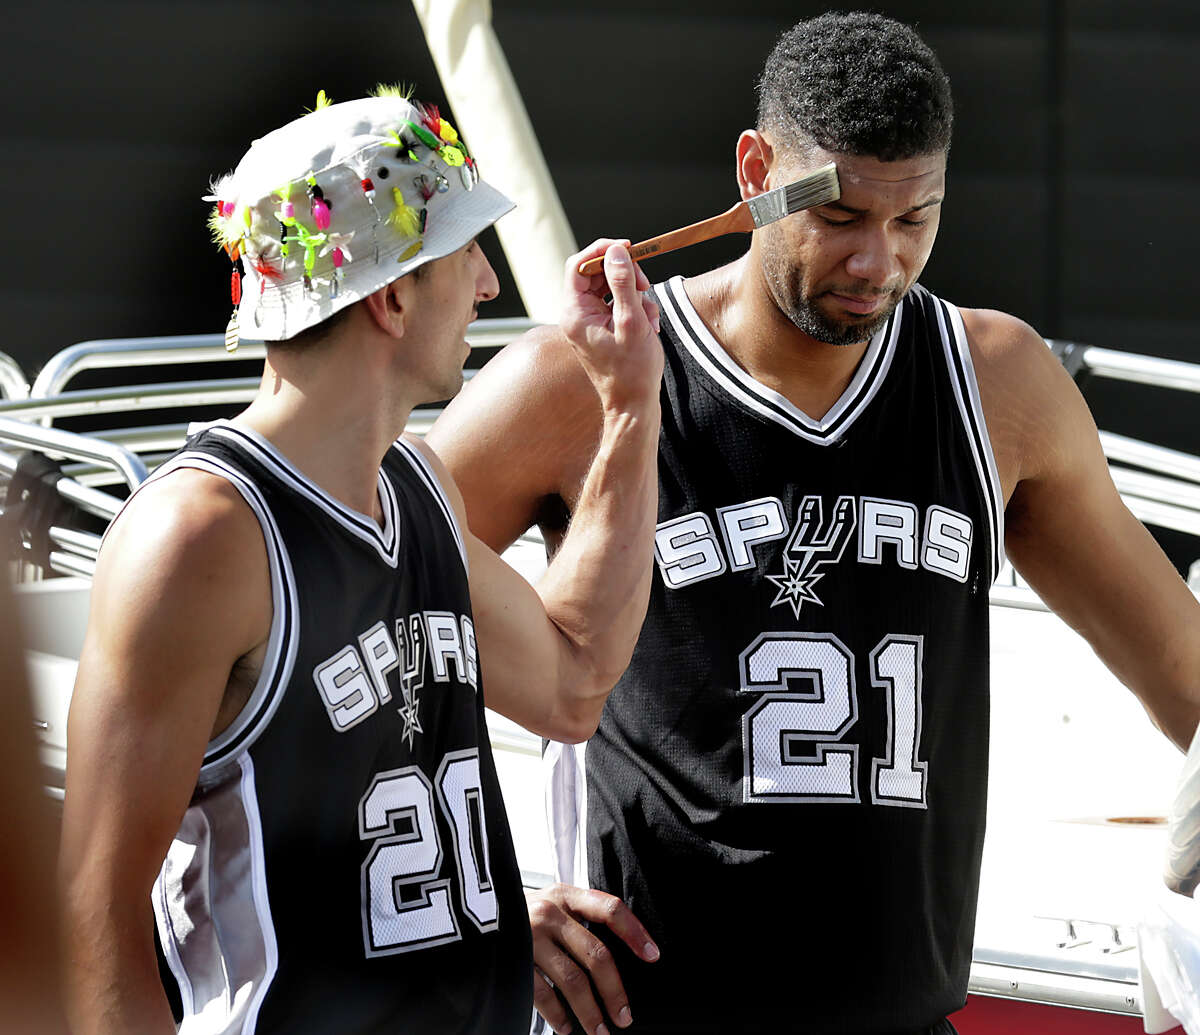 Manu Ginobili, left, pretends to apply makeup to teammate Tim Duncan as the San Antonio Spurs spent much of the afternoon Tuesday, October 6, 2015, at their practice facility performing for new H-E-B commercials that will be aired during the upcoming season.